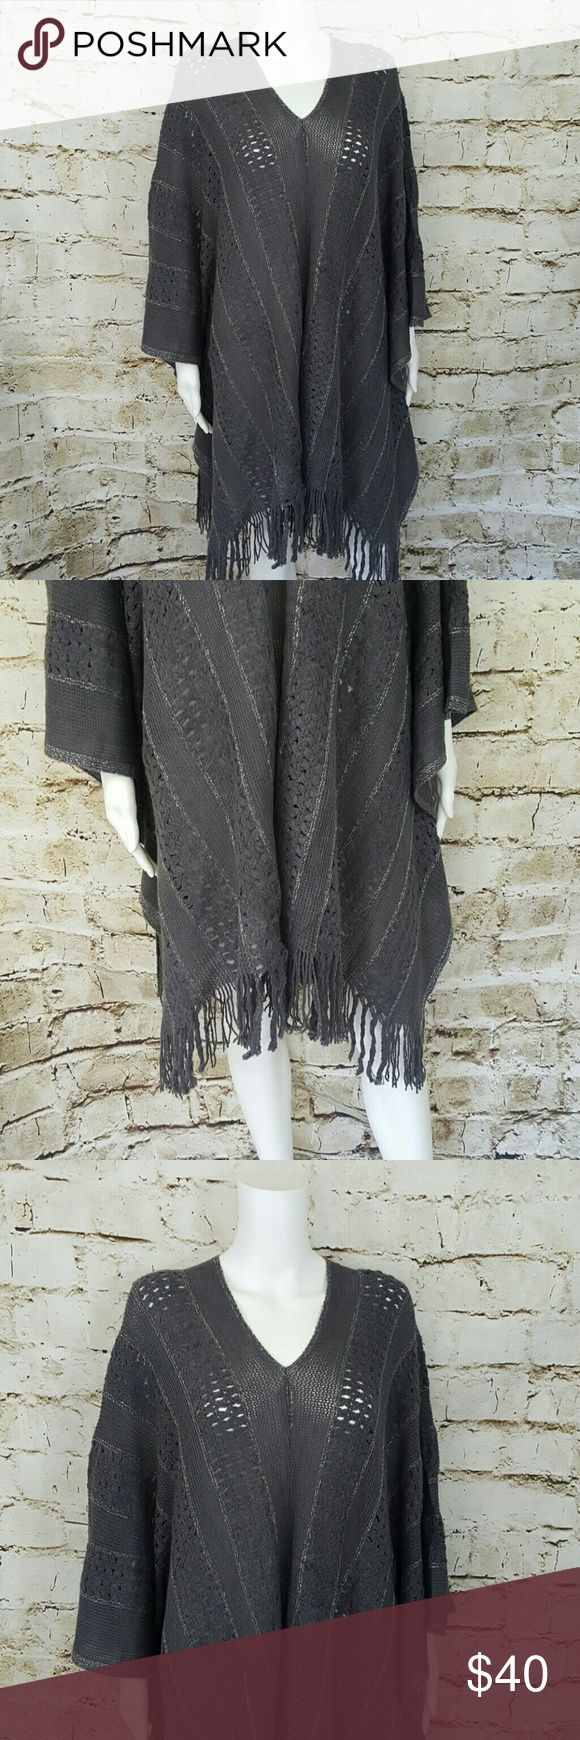 BCBGMAXAZRIA sweater poncho This is a one size fits all sweater.  It has armpit holes so it's a sweater that looks like a poncho perfect with skinny jeans or leggings and boots!  Super comfy, great for festival look with silver metallic thread woven throughout BCBGMAXAZRIA  Sweaters